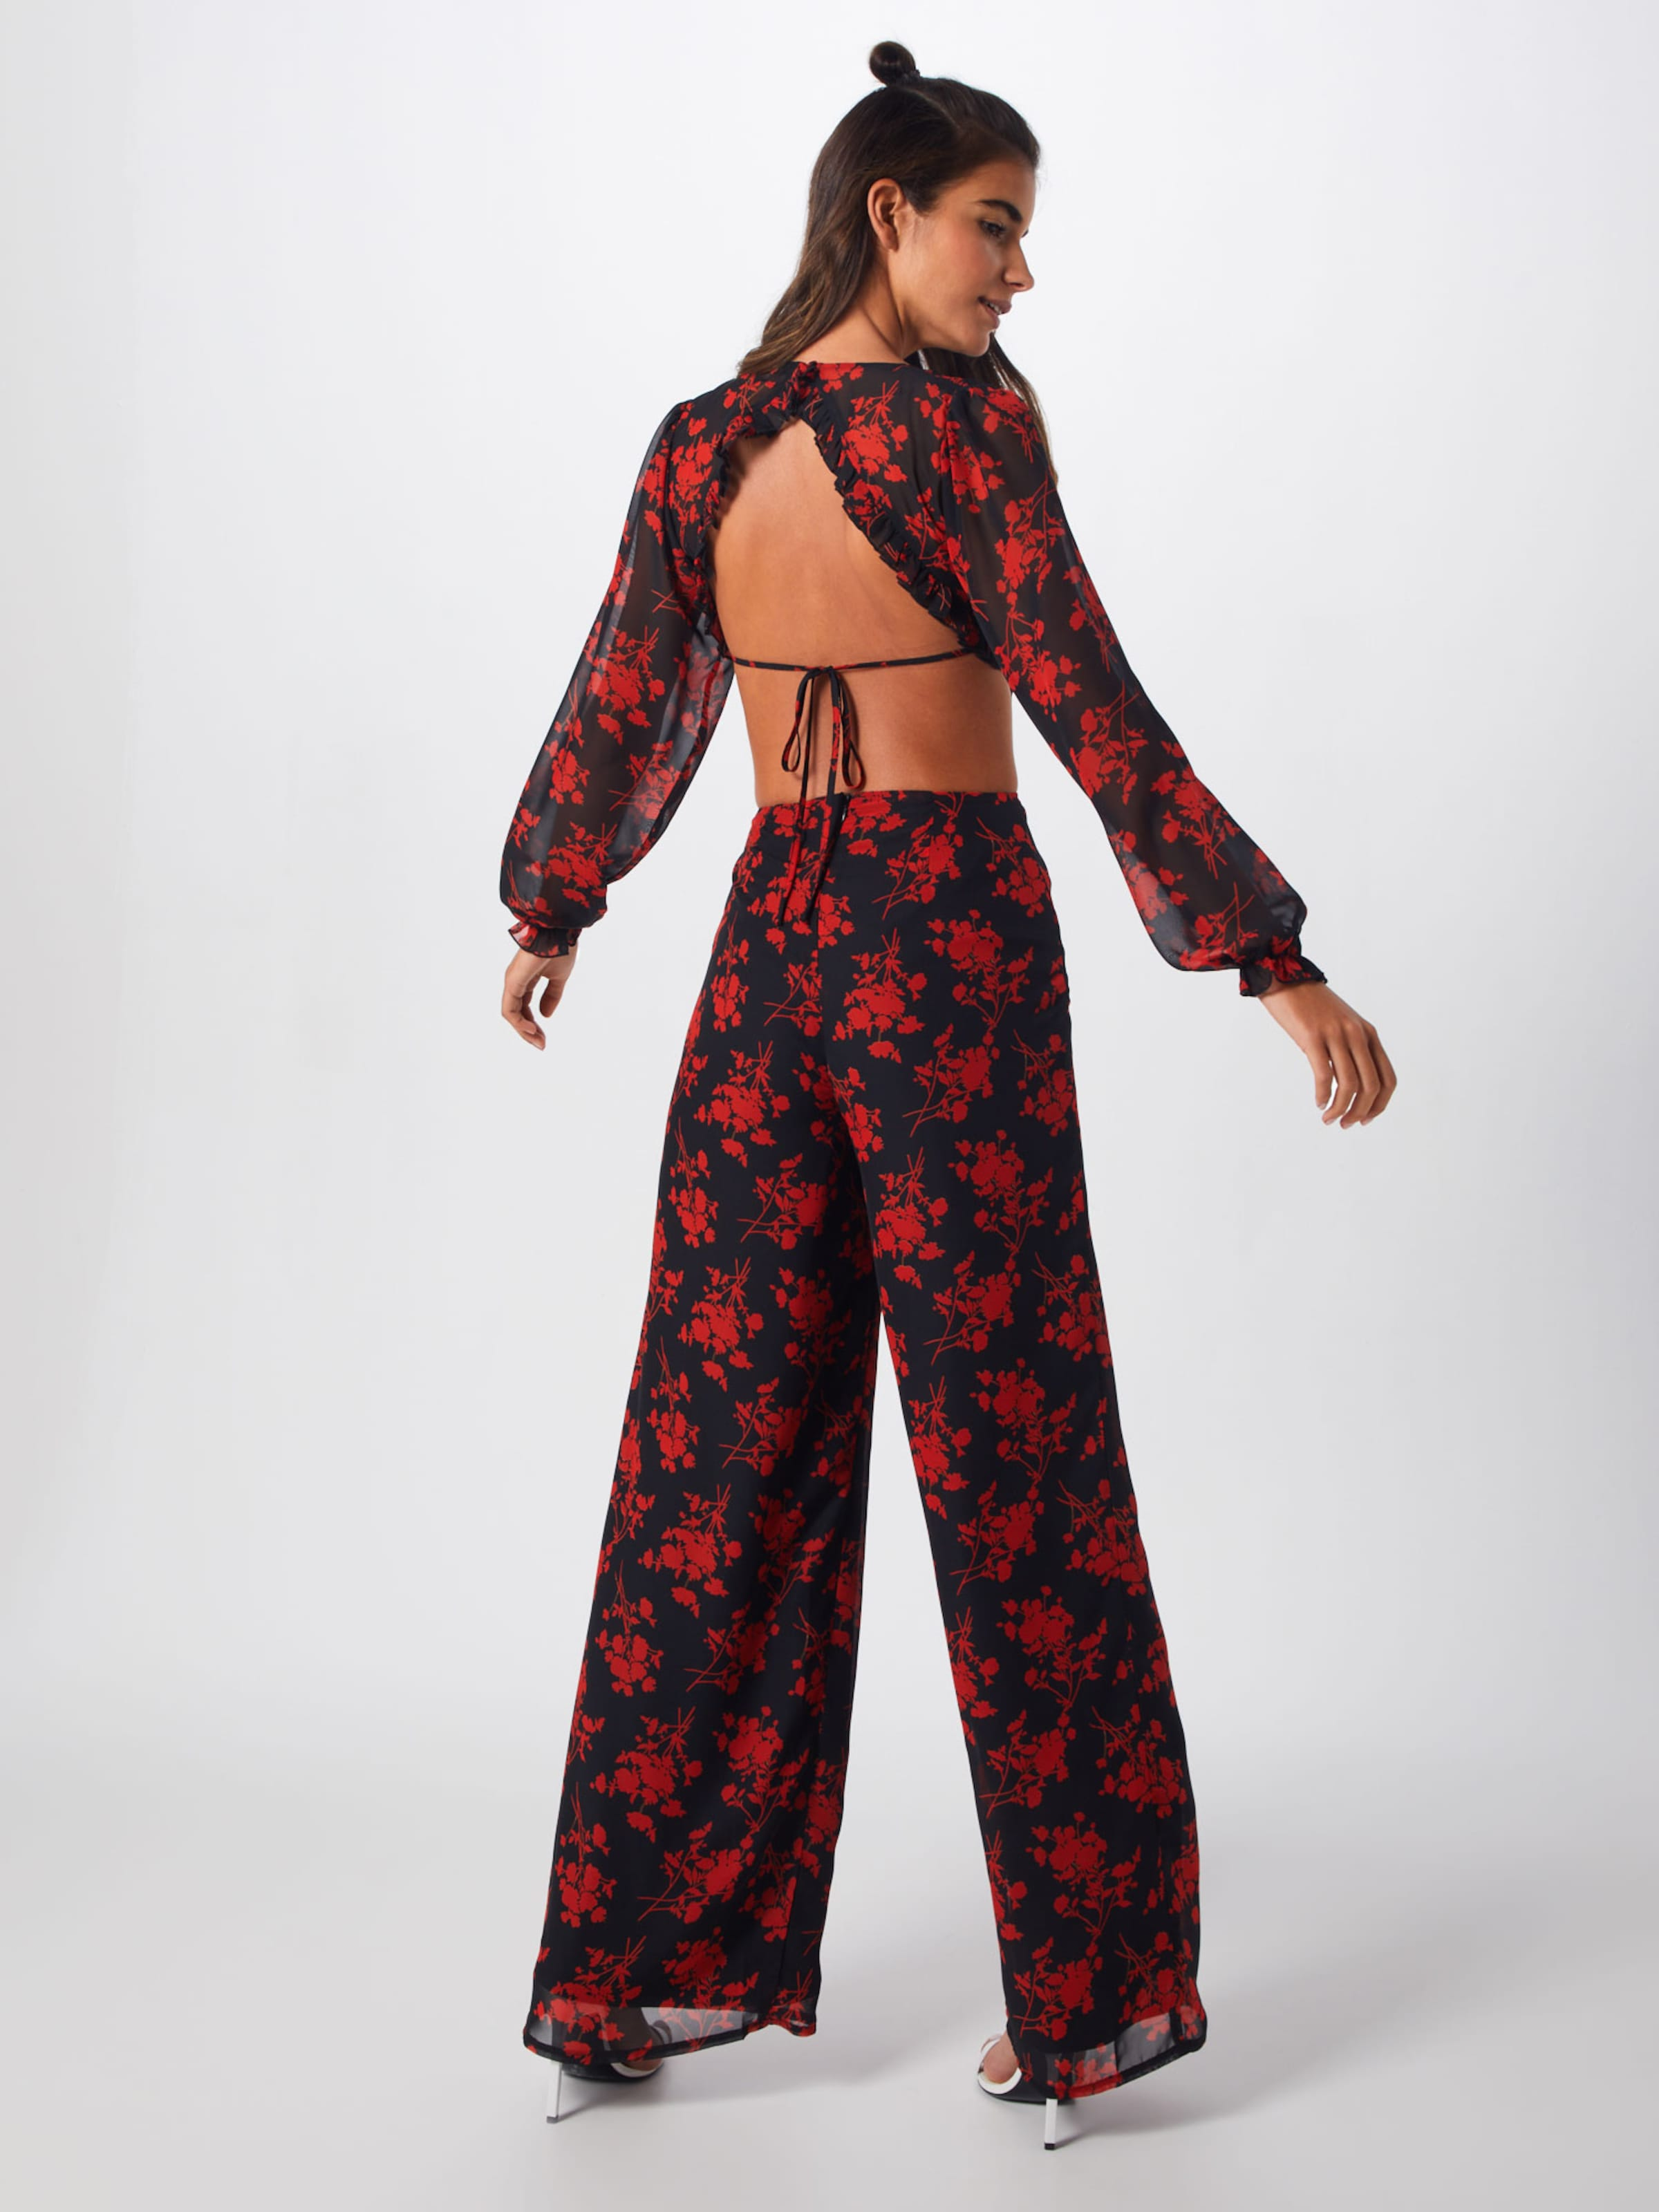 Jumpsuit' Open Frill 'floral Back Missguided In Overall RotSchwarz eQxBWordC